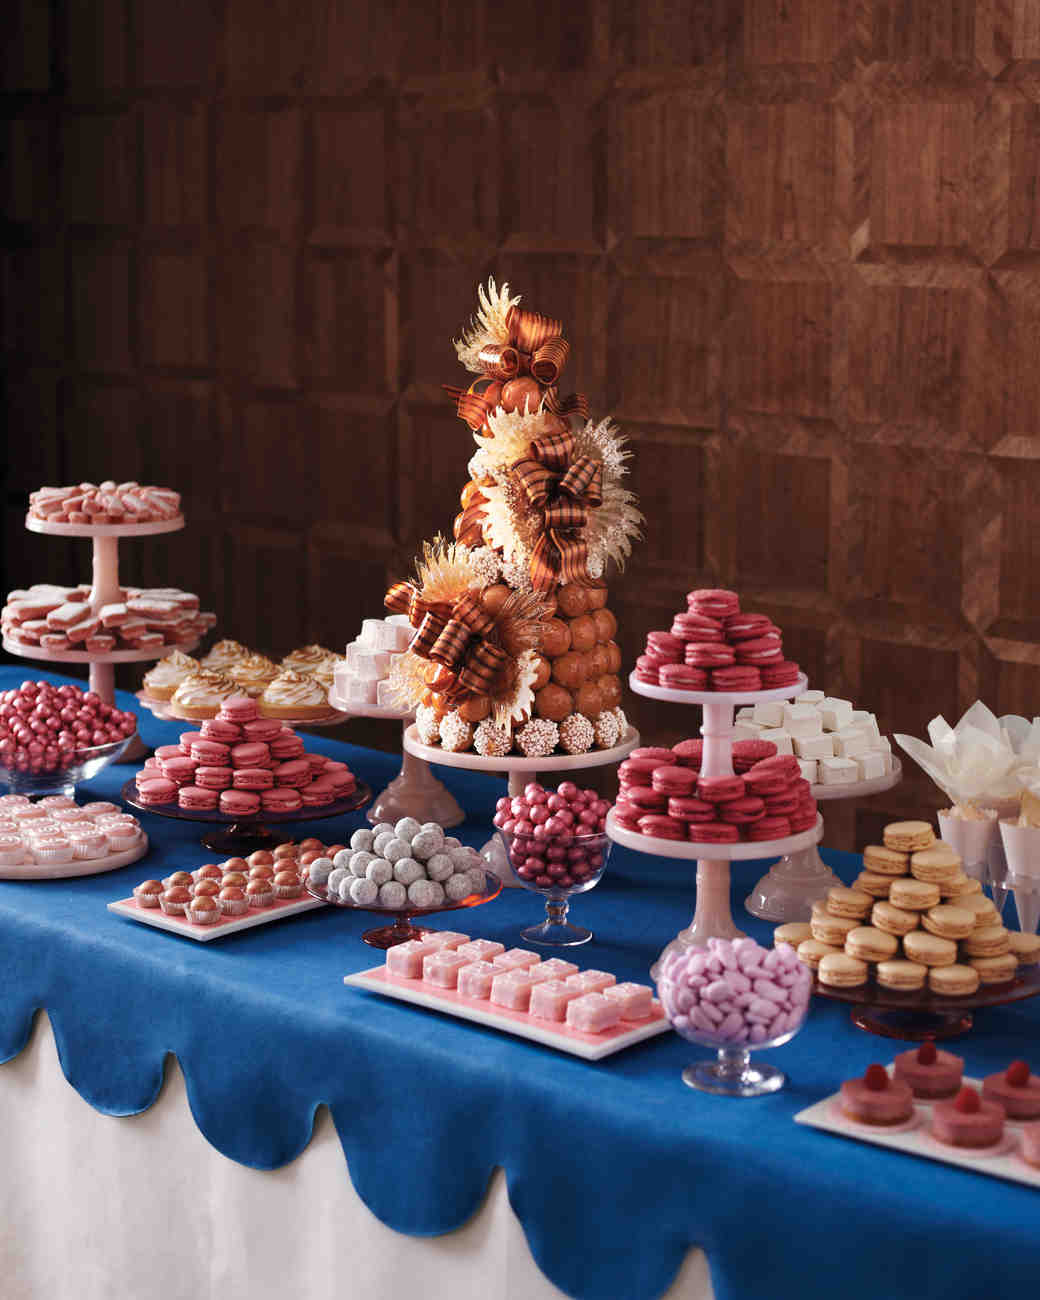 Wedding Sweet Table: 39 Amazing Dessert Tables